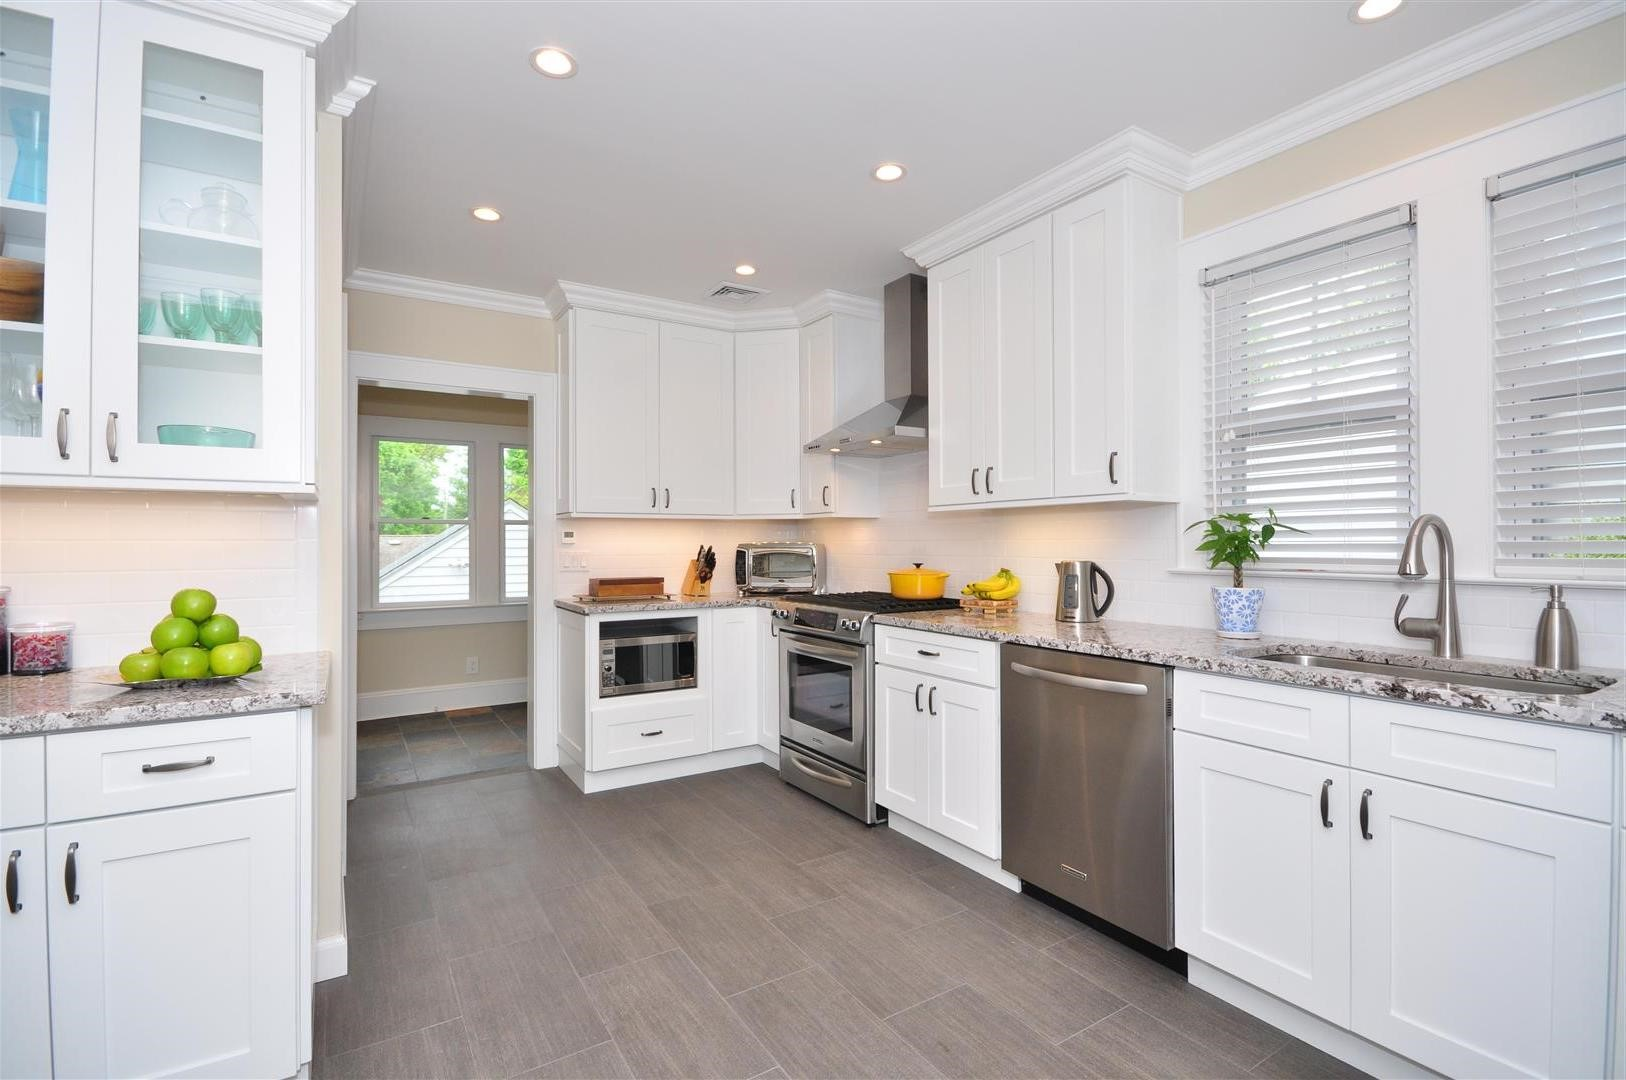 White shaker kitchen cabinets alba kitchen design center kitchen cabinets nj - Stylish knob styles that can enhance your kitchen cabinets ...